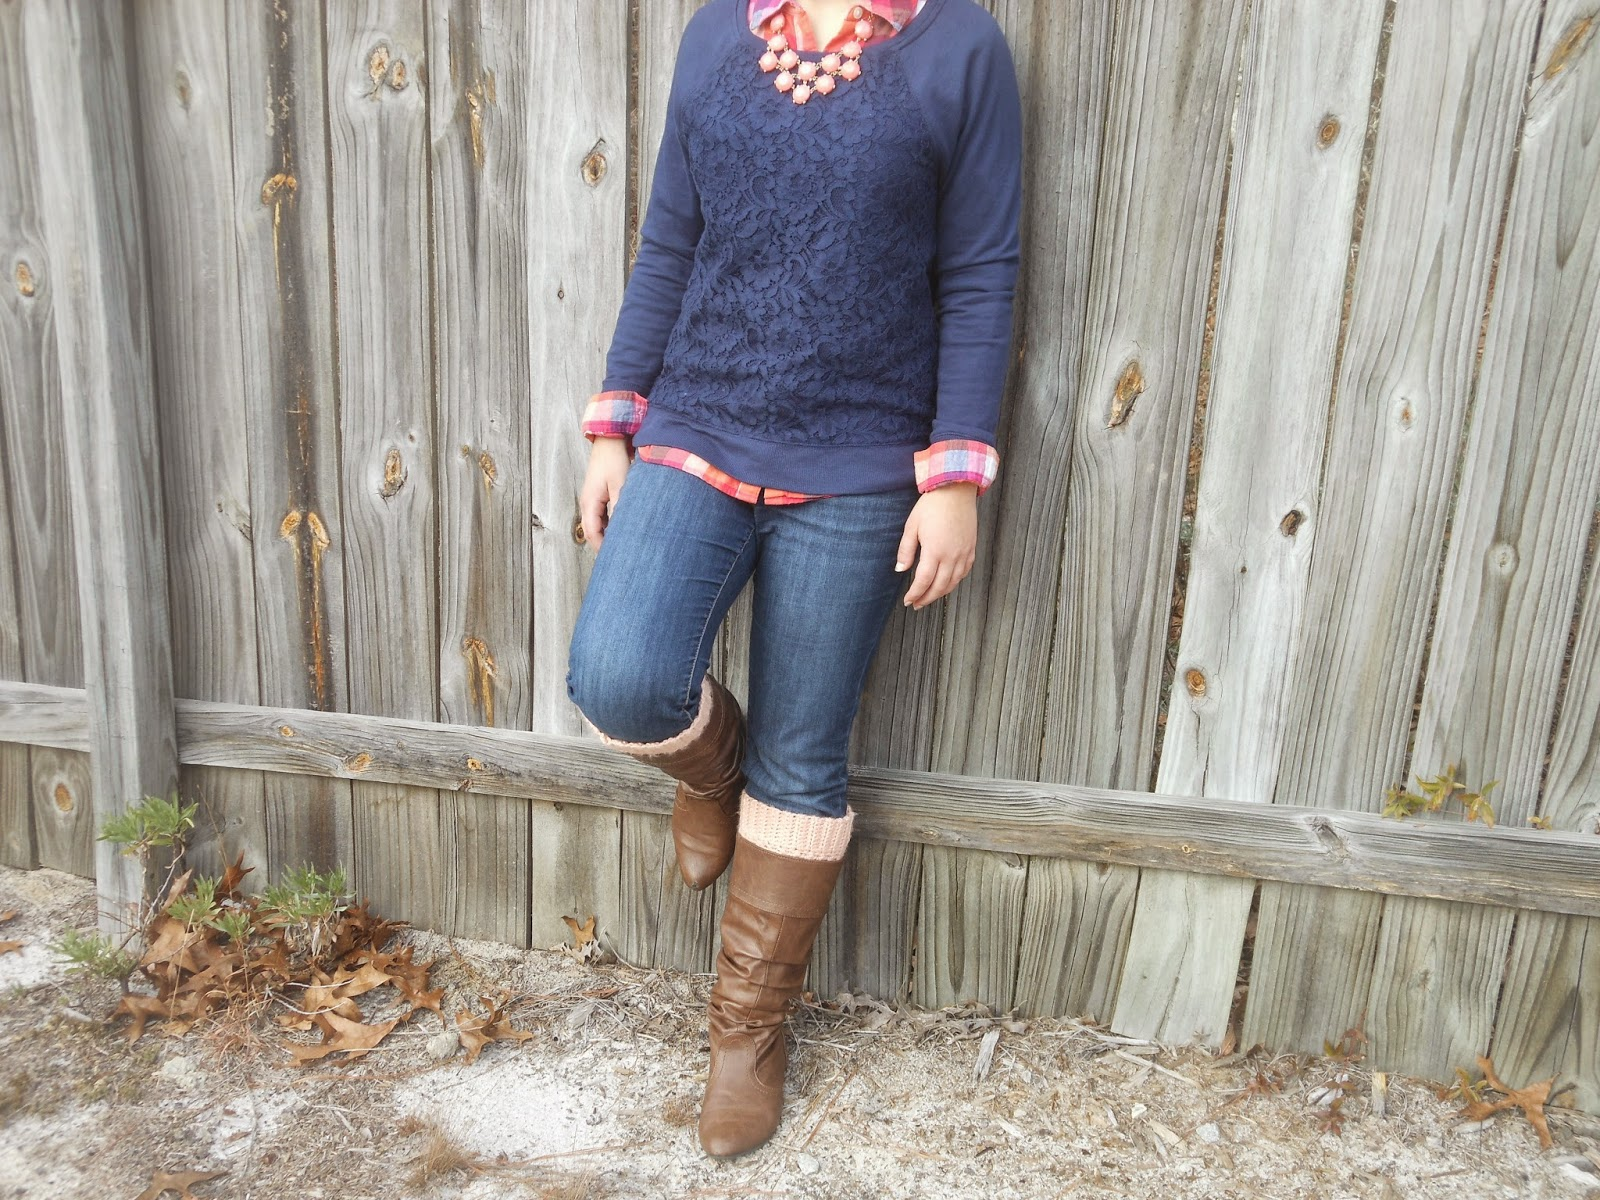 PMT Style Challenge: Copy an Outfit You Pinned. Plaid button down, lace sweater, jeans, riding boots, boot socks, statement necklace.